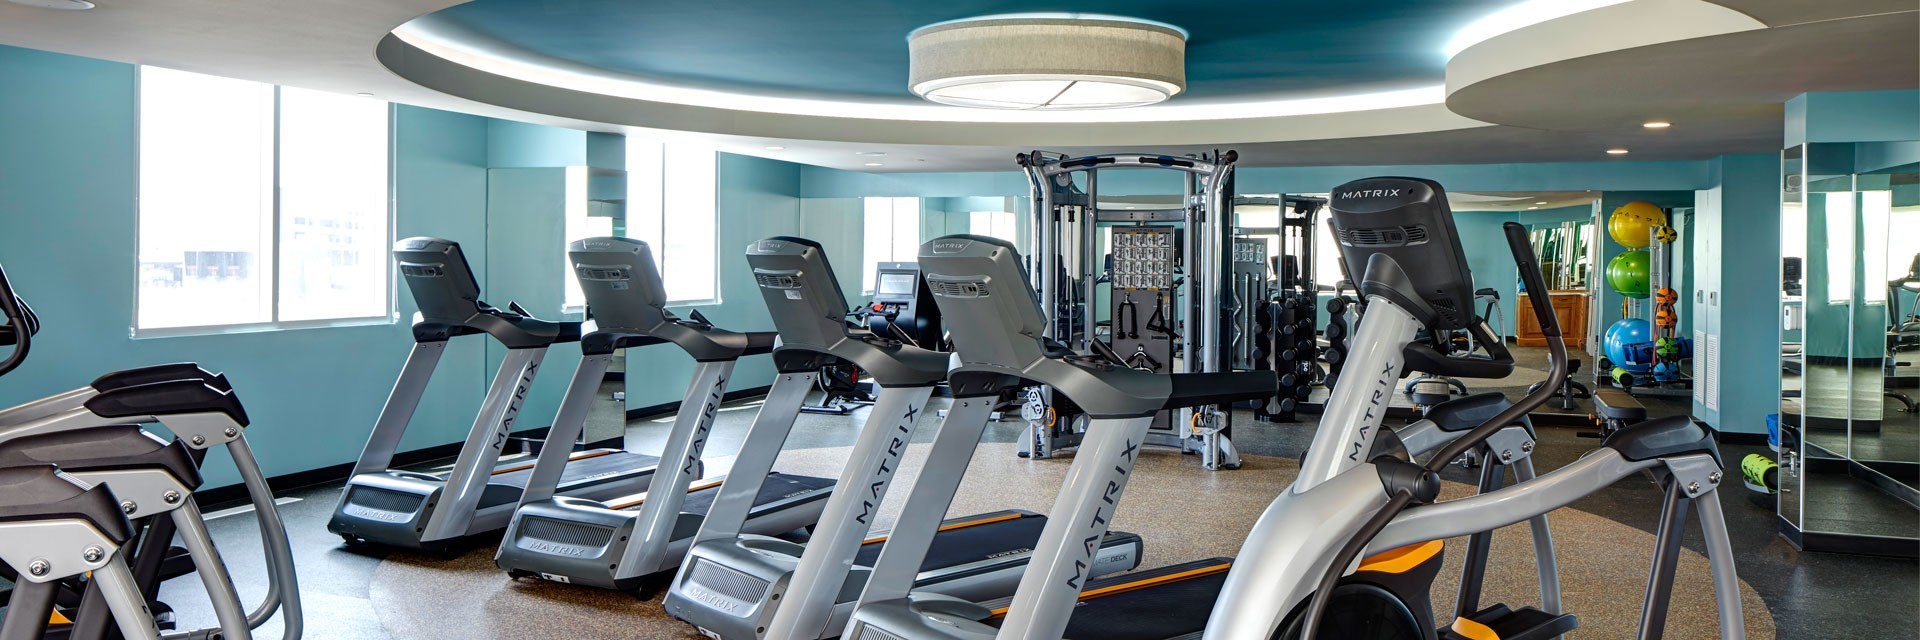 Archer Hotel Austin Fitness Room